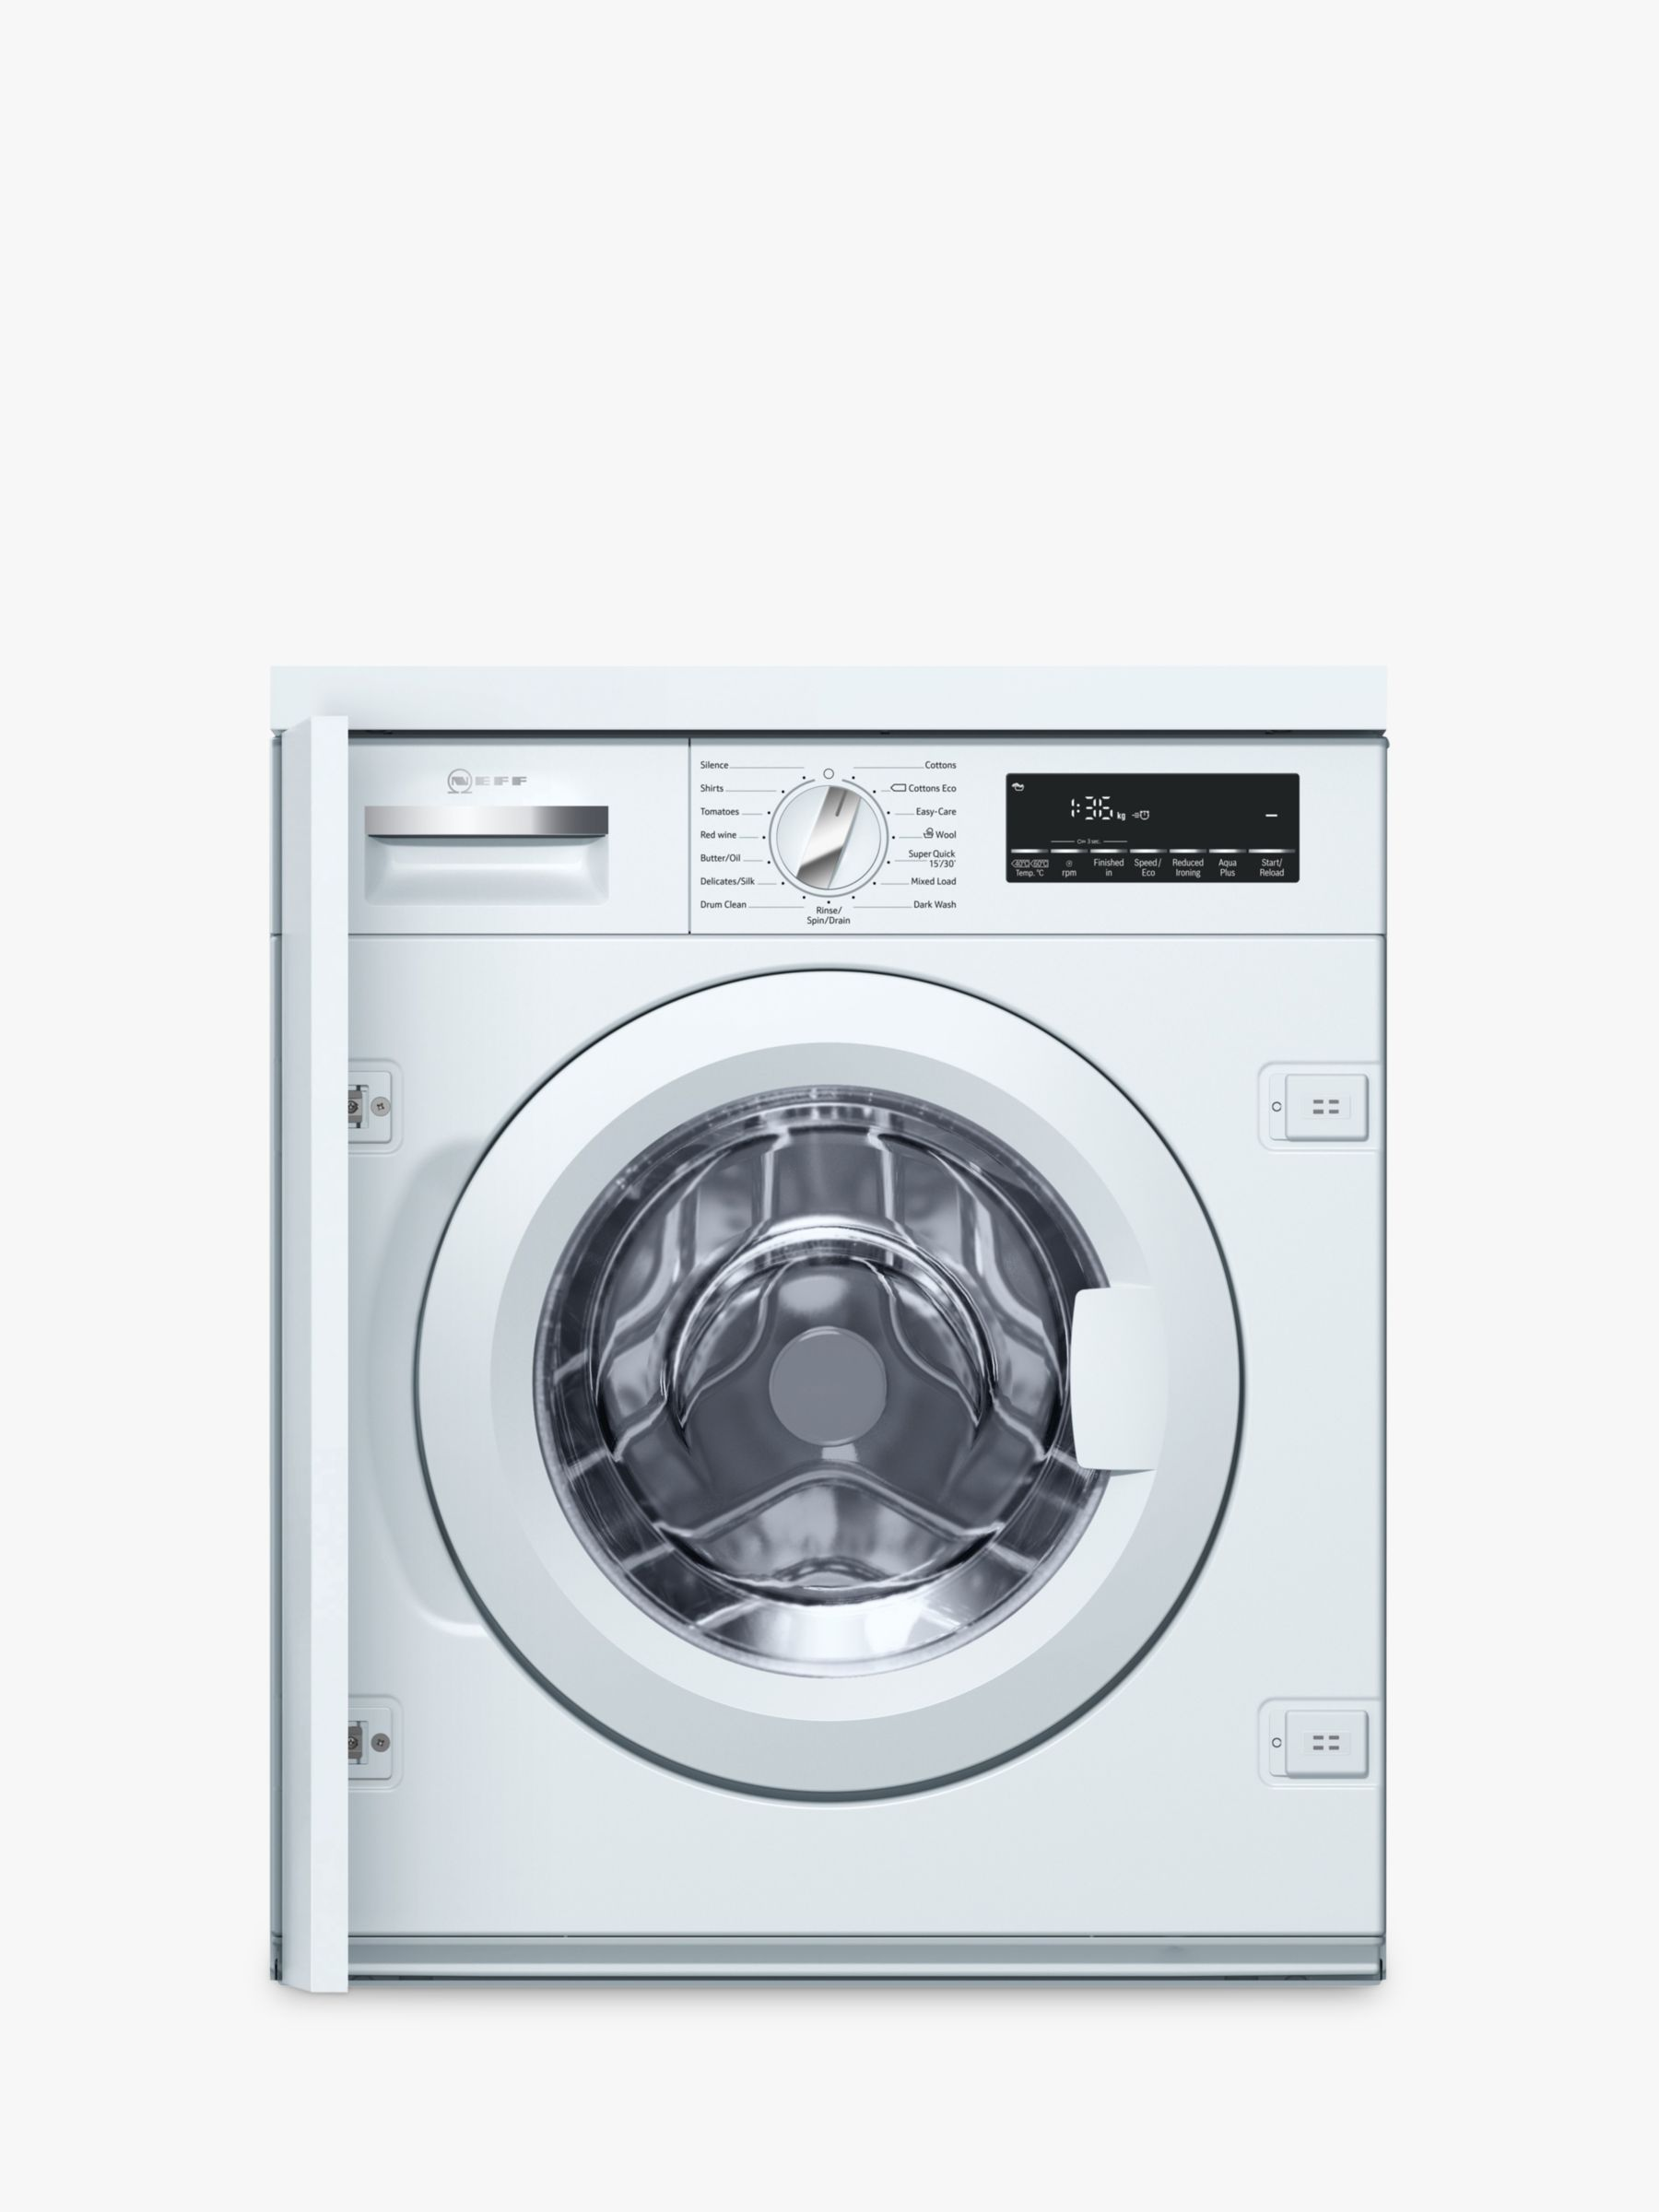 NEFF Neff W544BX0GB Integrated Washing Machine, 8kg Load, A+++ Energy Rating, 1400rpm Spin, White